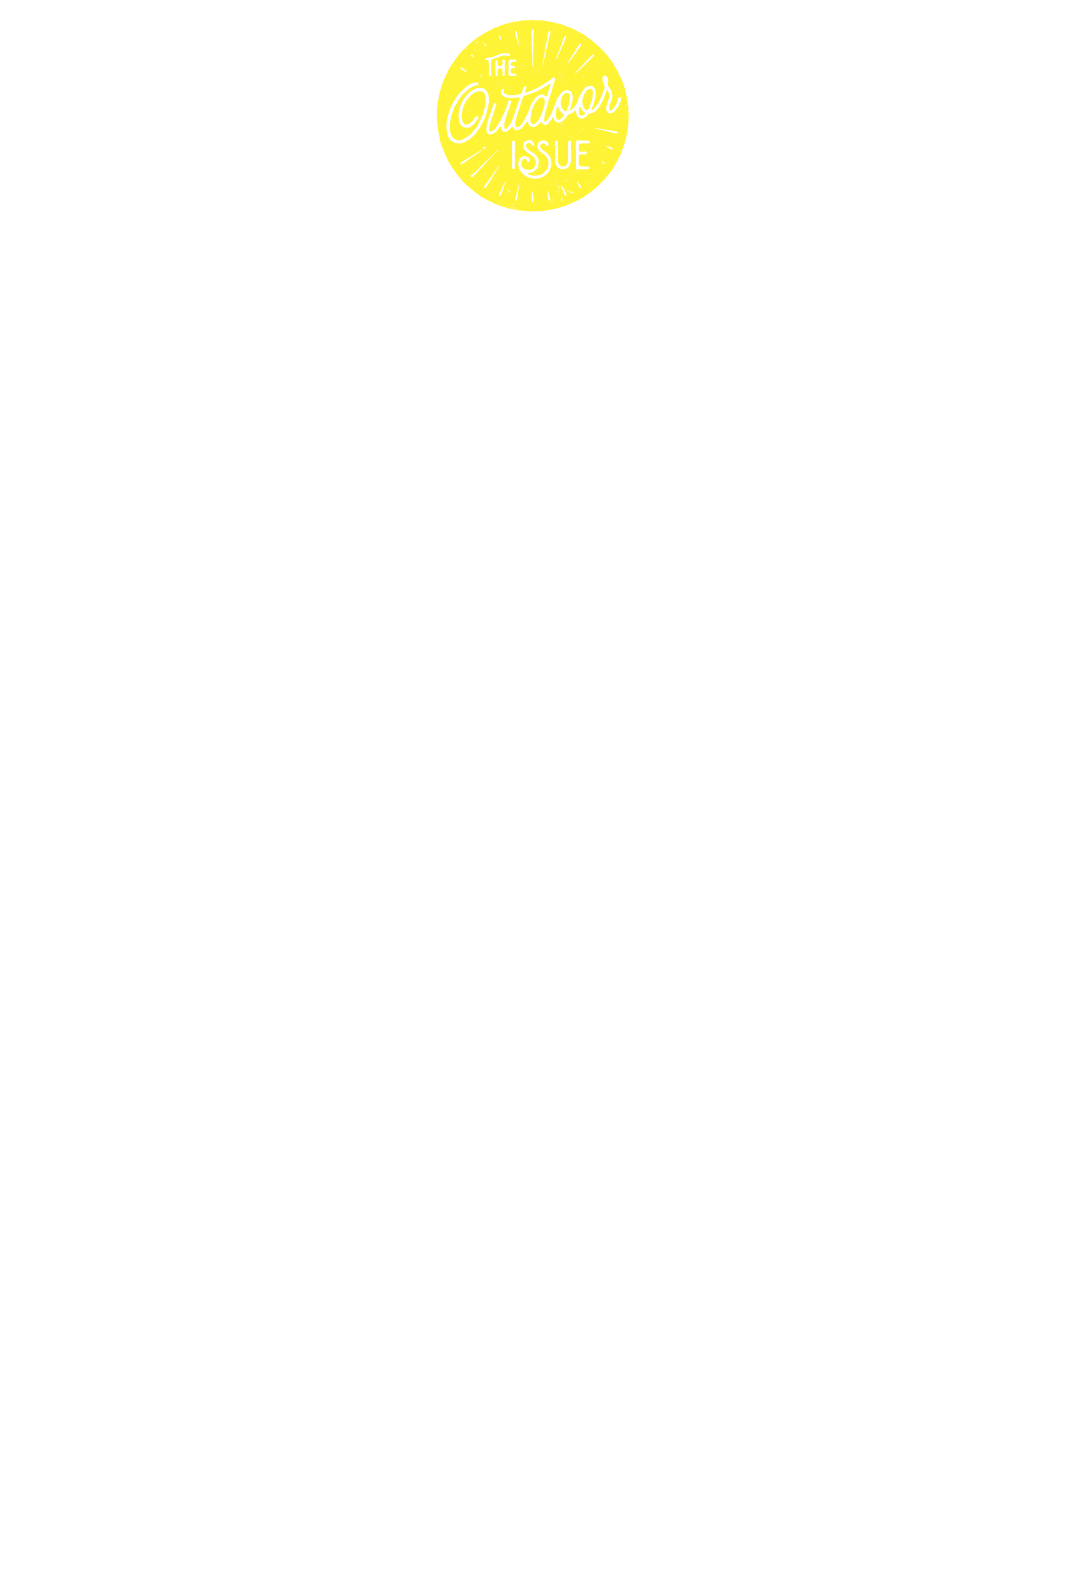 Happy Trails: 55 55 hiking and biking adventures to explore this spring and summer. By Ron Cassie. Lettering by Simon Walker